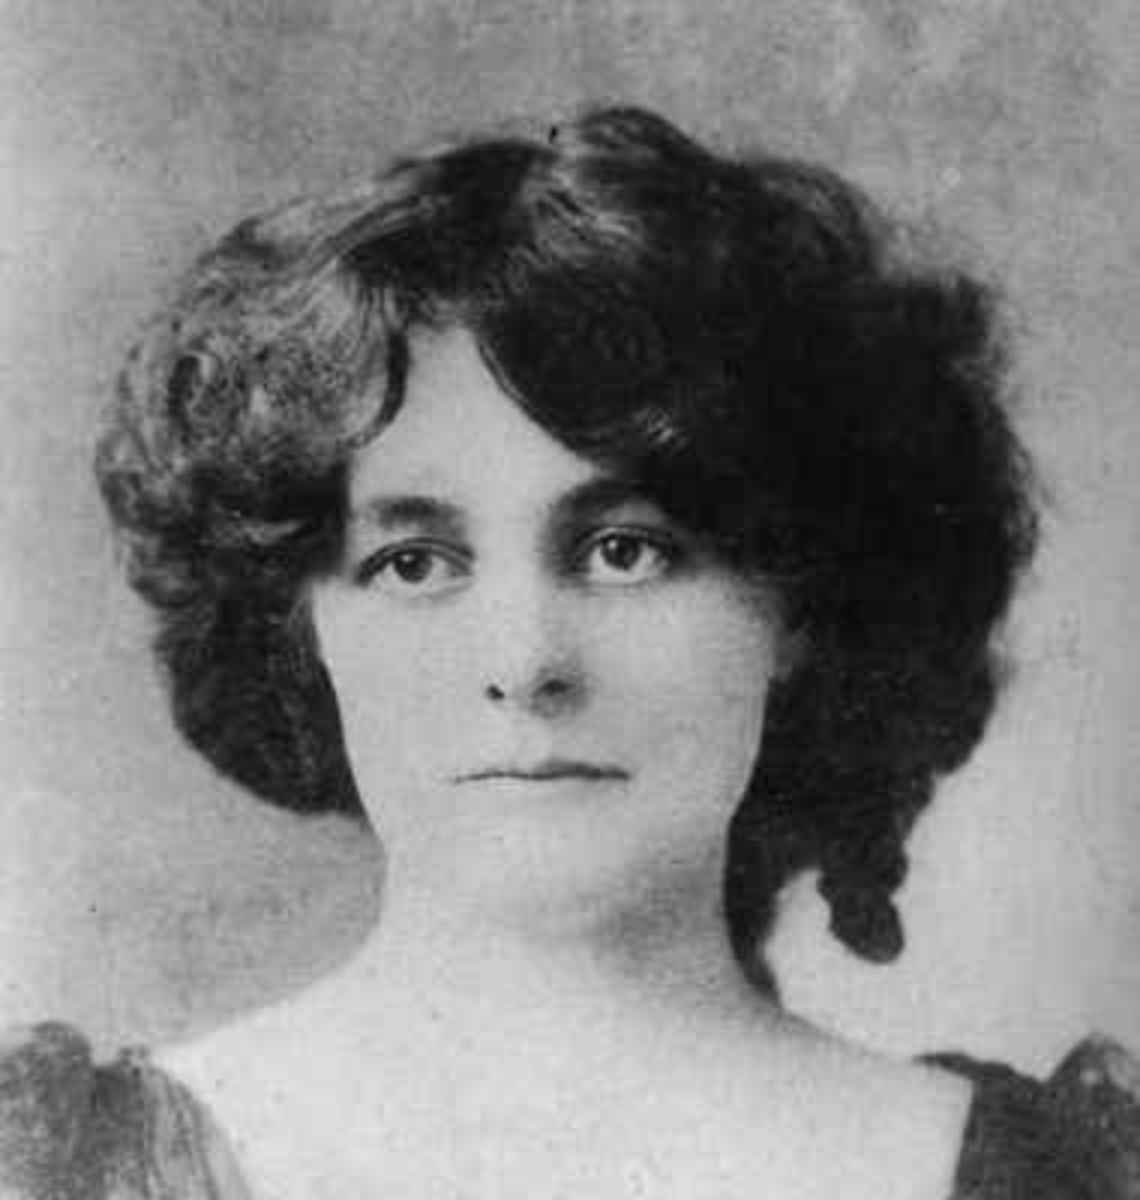 Maud Gonne, age 23, in 1889 - the year she first met W.B.Yeats